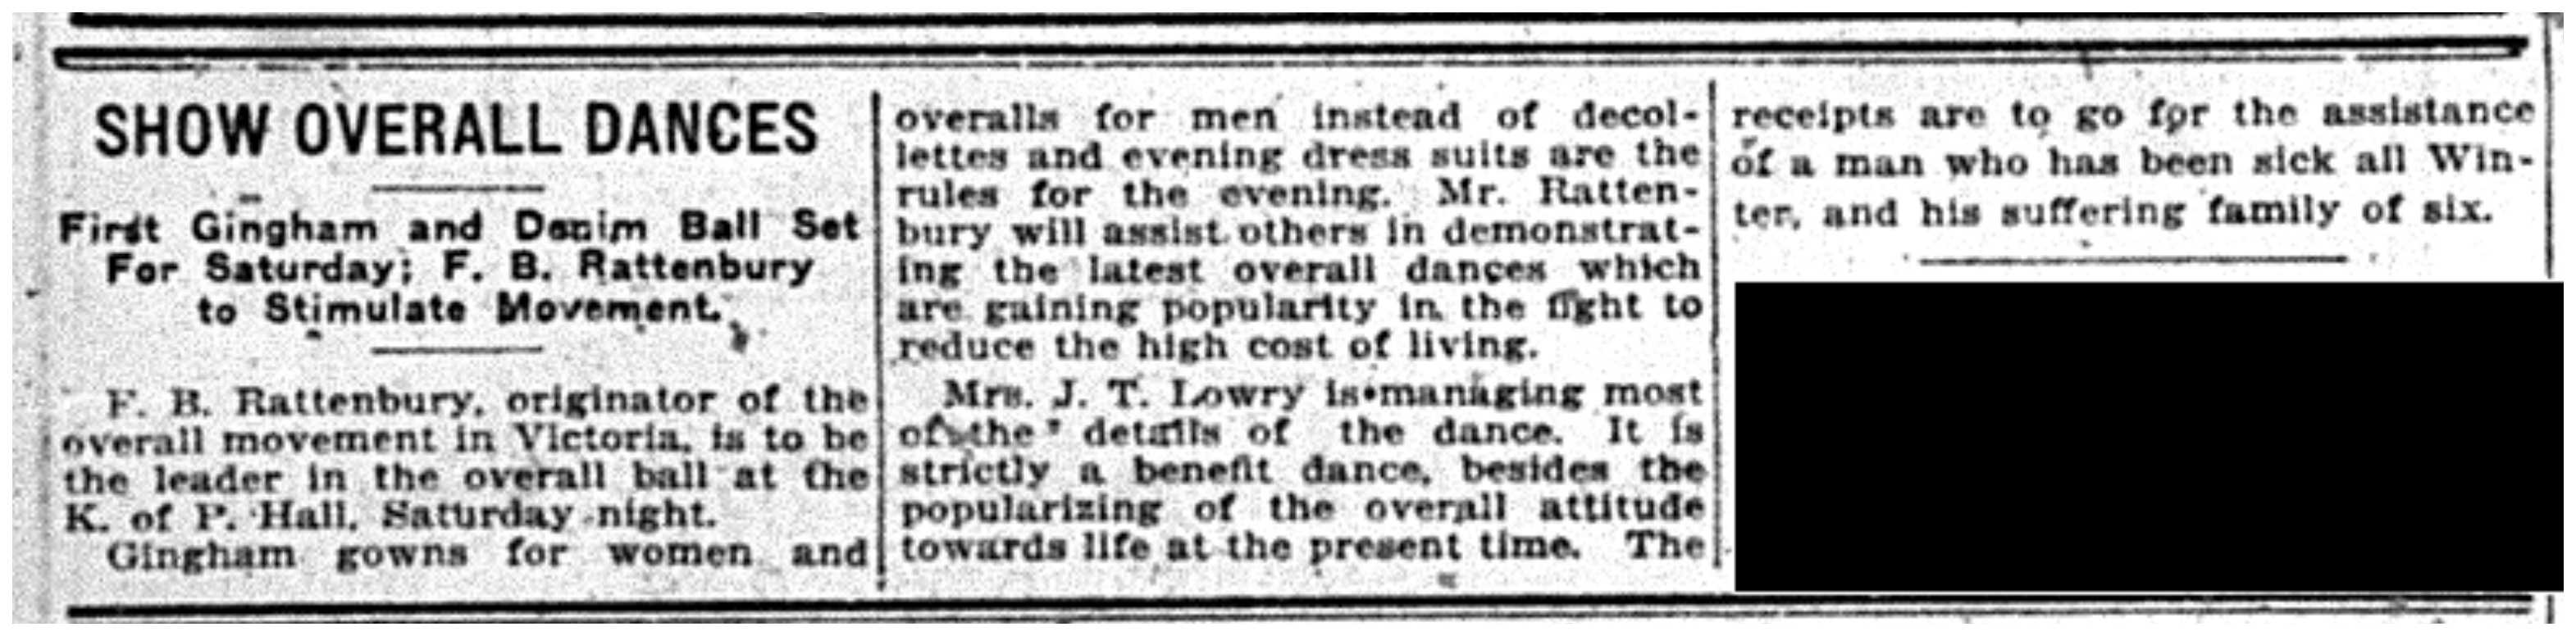 """""""Show Overall Dances: First Gingham and Denim Ball Set for Saturday; F.B. Rattenbury to Stimulate Movement"""""""